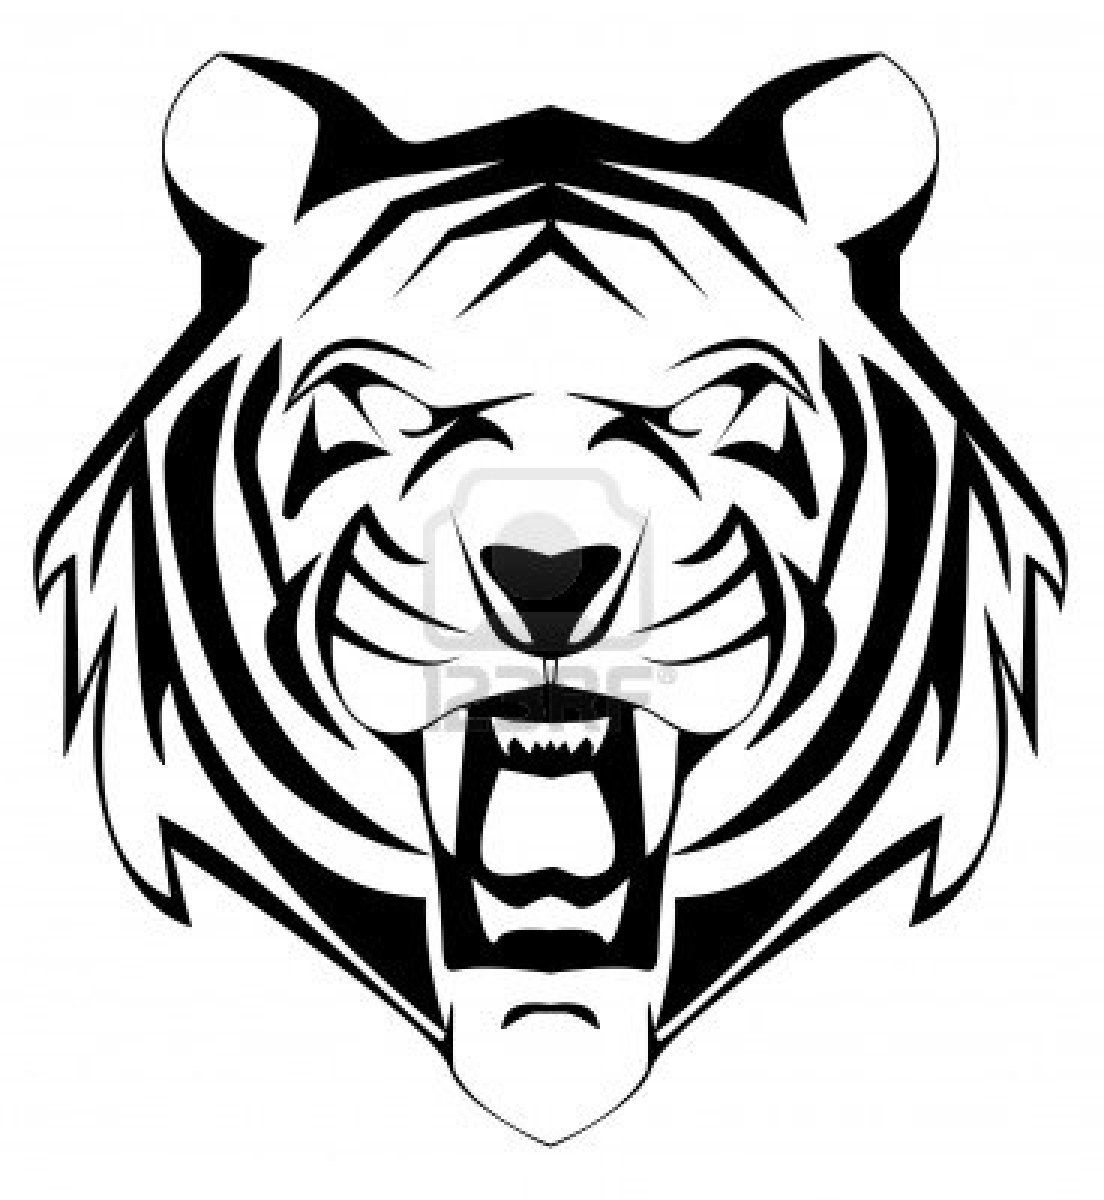 Chinese tiger symbol google search artsy fun stuff pinterest chinese tiger symbol google search biocorpaavc